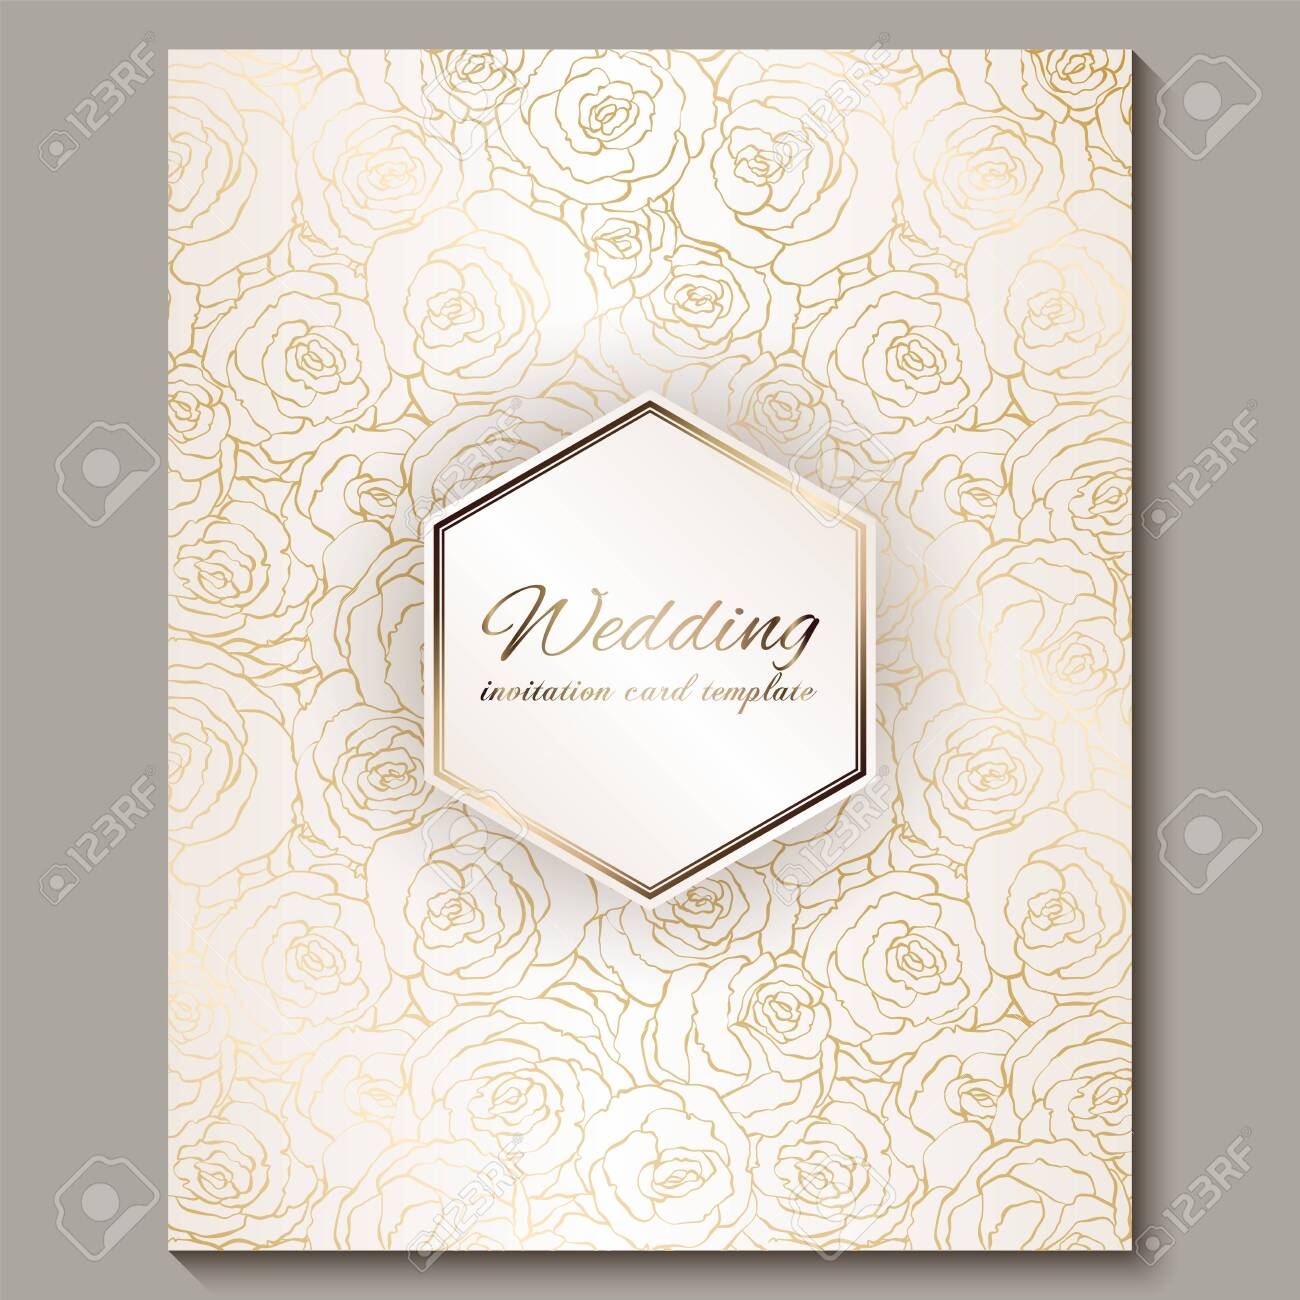 luxury gold vintage wedding invitation floral background with royalty free cliparts vectors and stock illustration image 121482083 123rf com